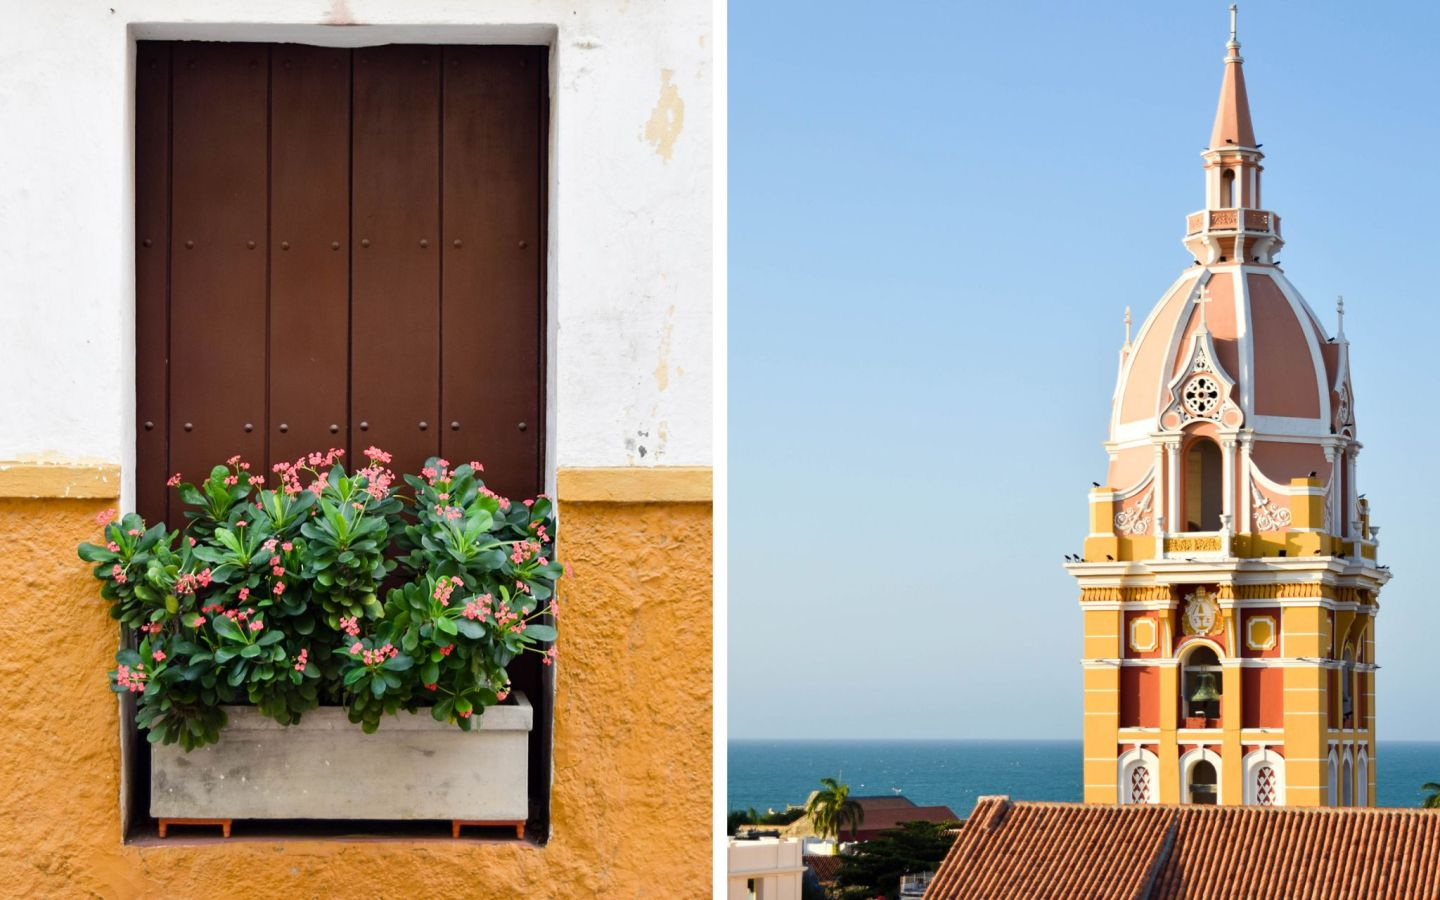 honeymoon in cartagena - cartagena travel guide - honeymoon in colombia